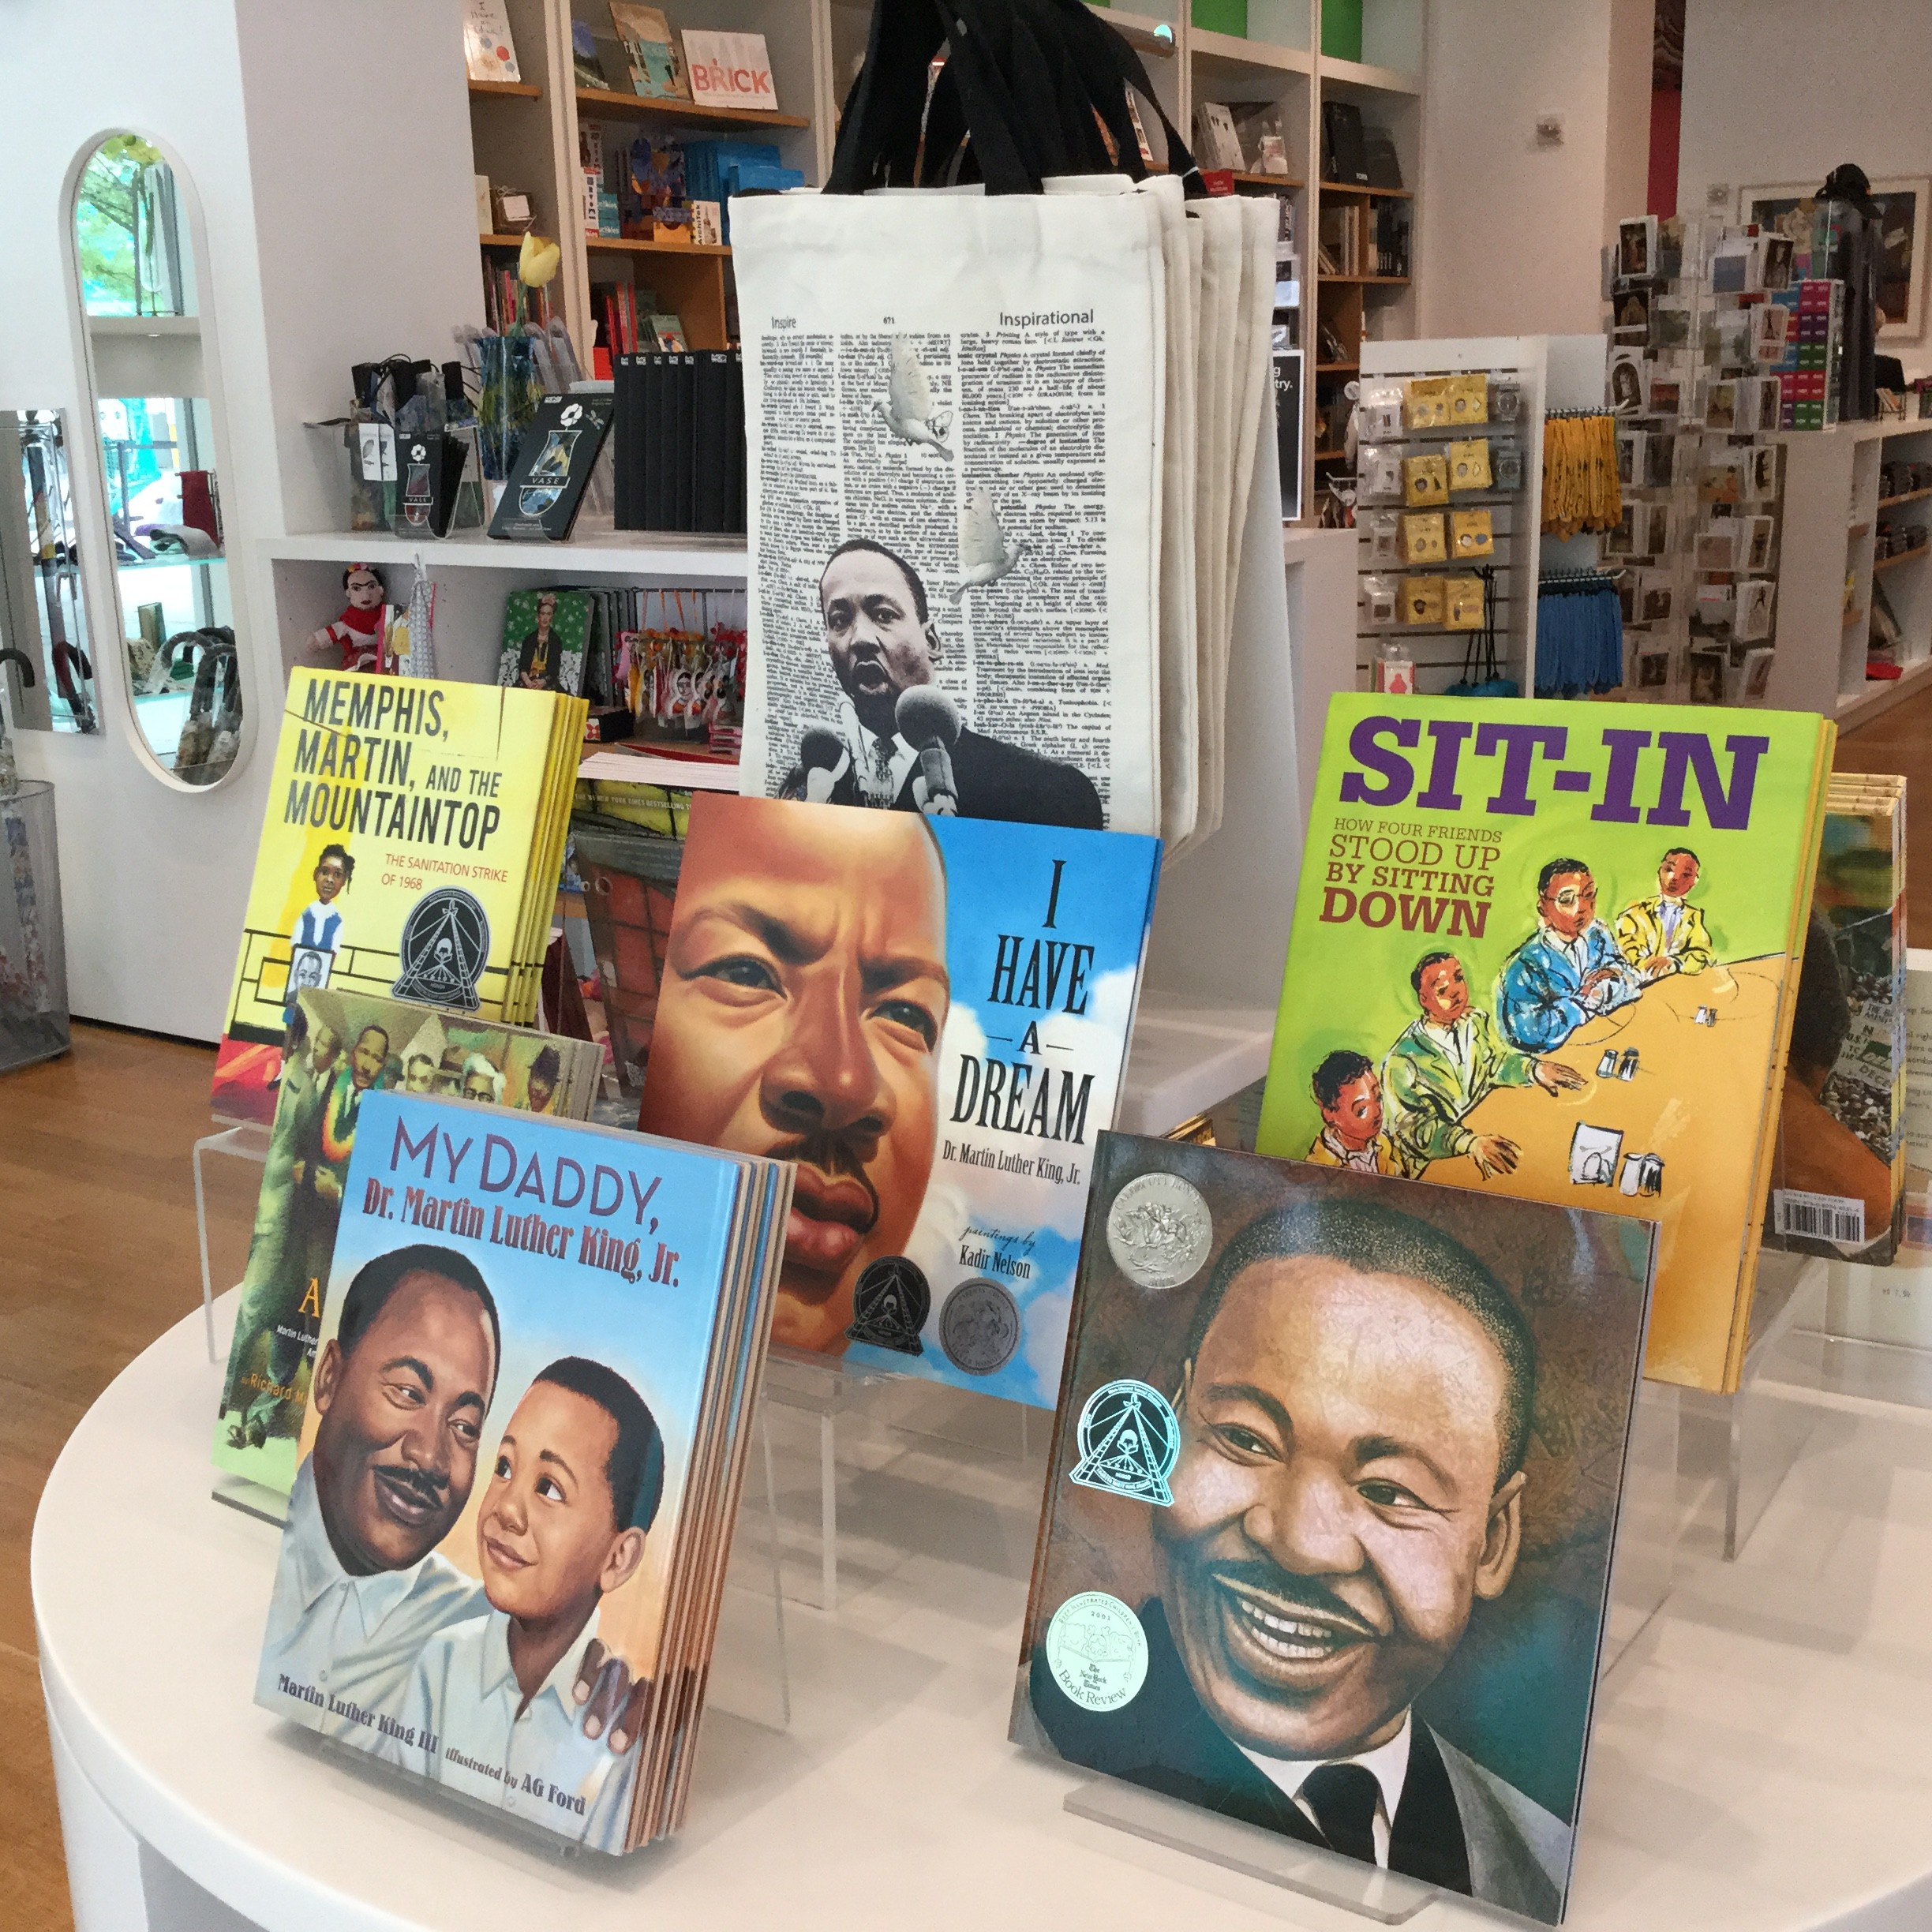 A display of children's books about the civil rights movement and equality.